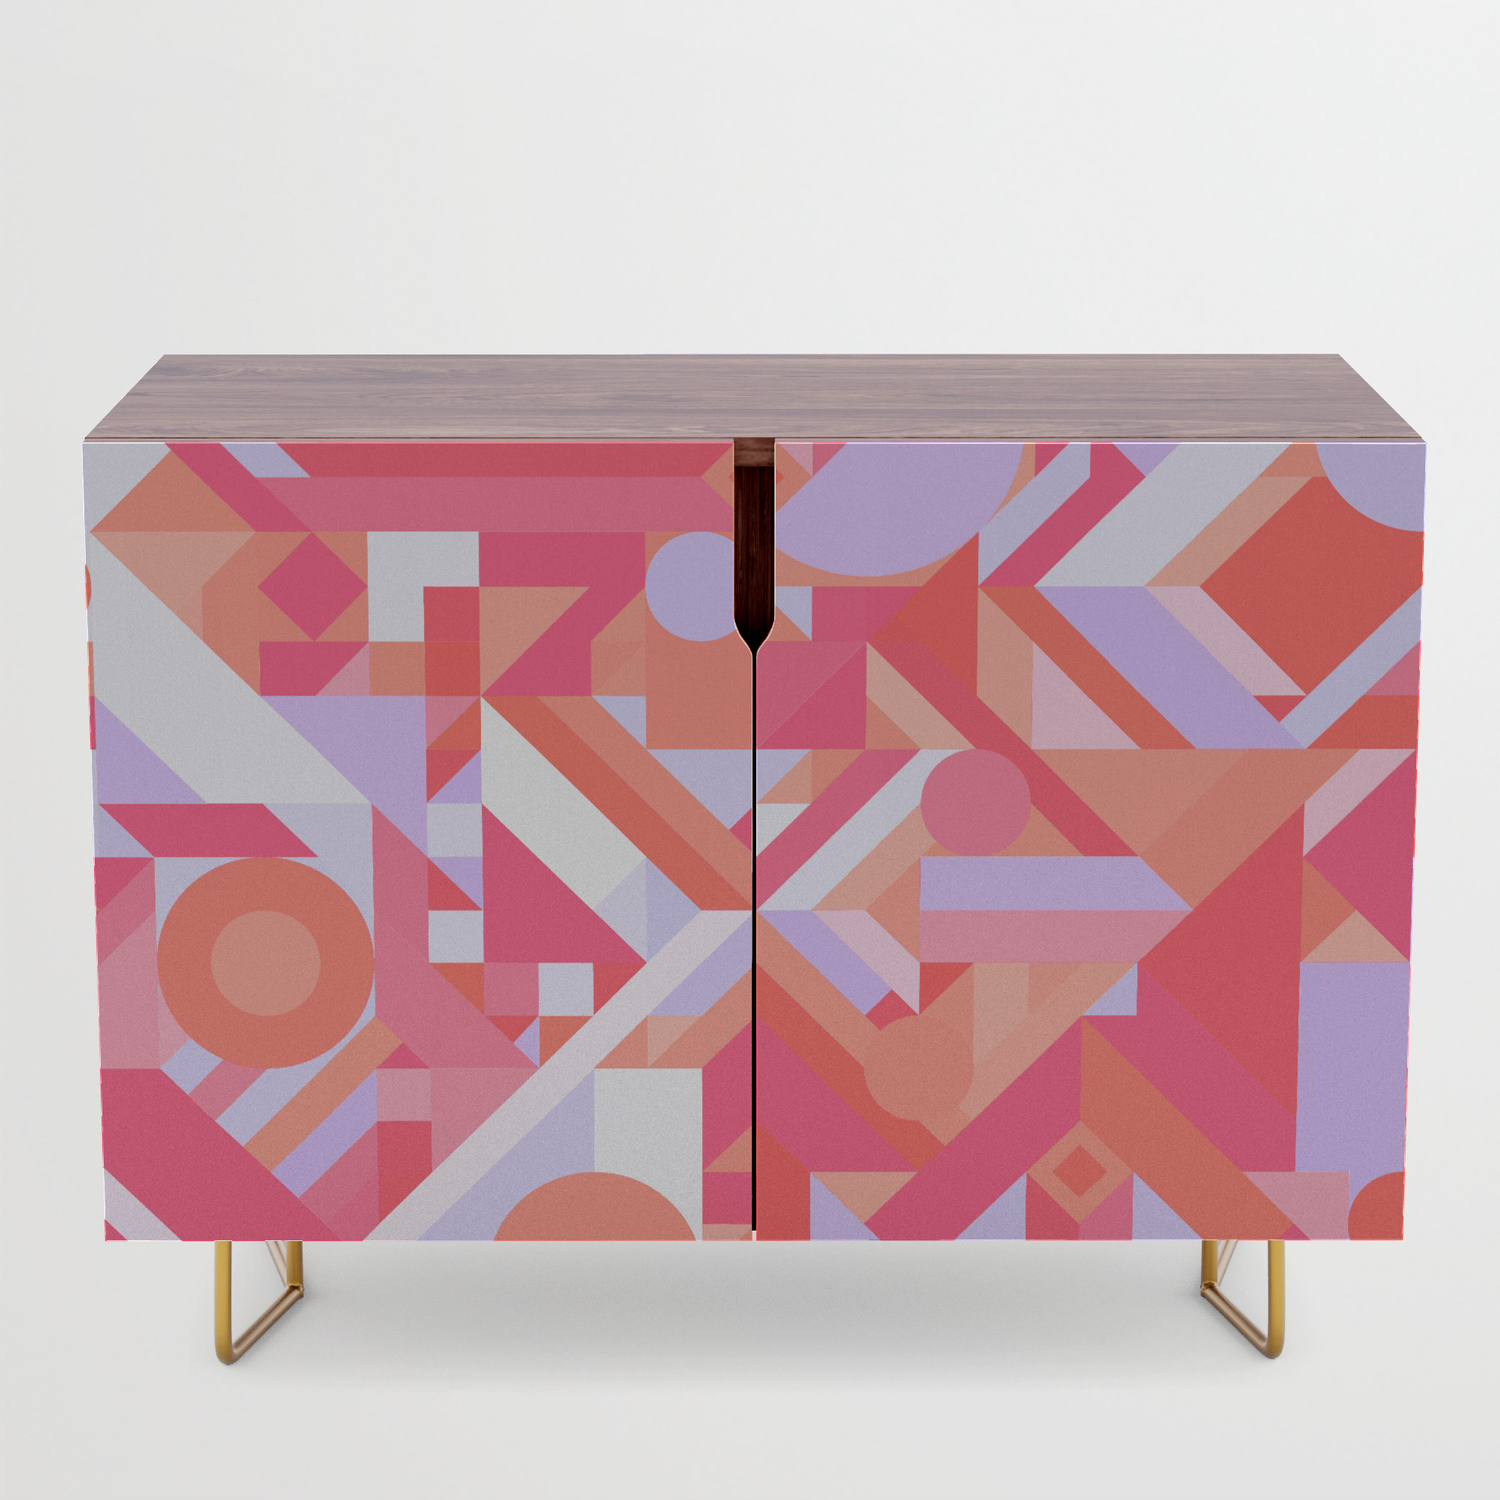 Geometry Shapes Pattern Print (Warm Red Lavender Color Scheme) Credenza With Regard To Geometric Shapes Credenzas (Gallery 15 of 20)